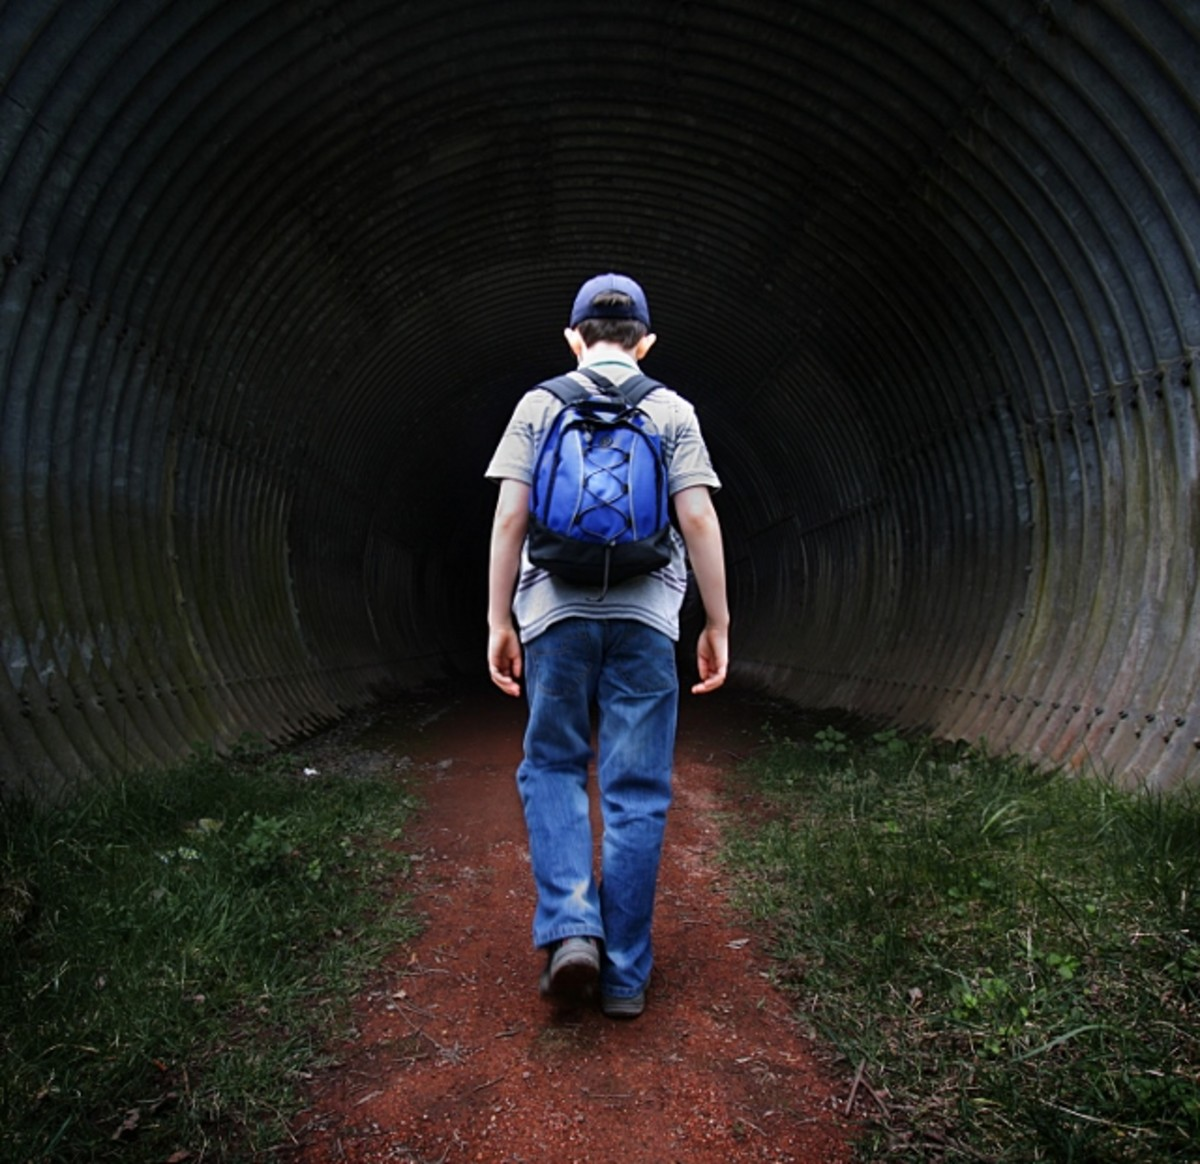 Letting your child go is like letting him walk down a dark tunnel without you, but it's inevitable.